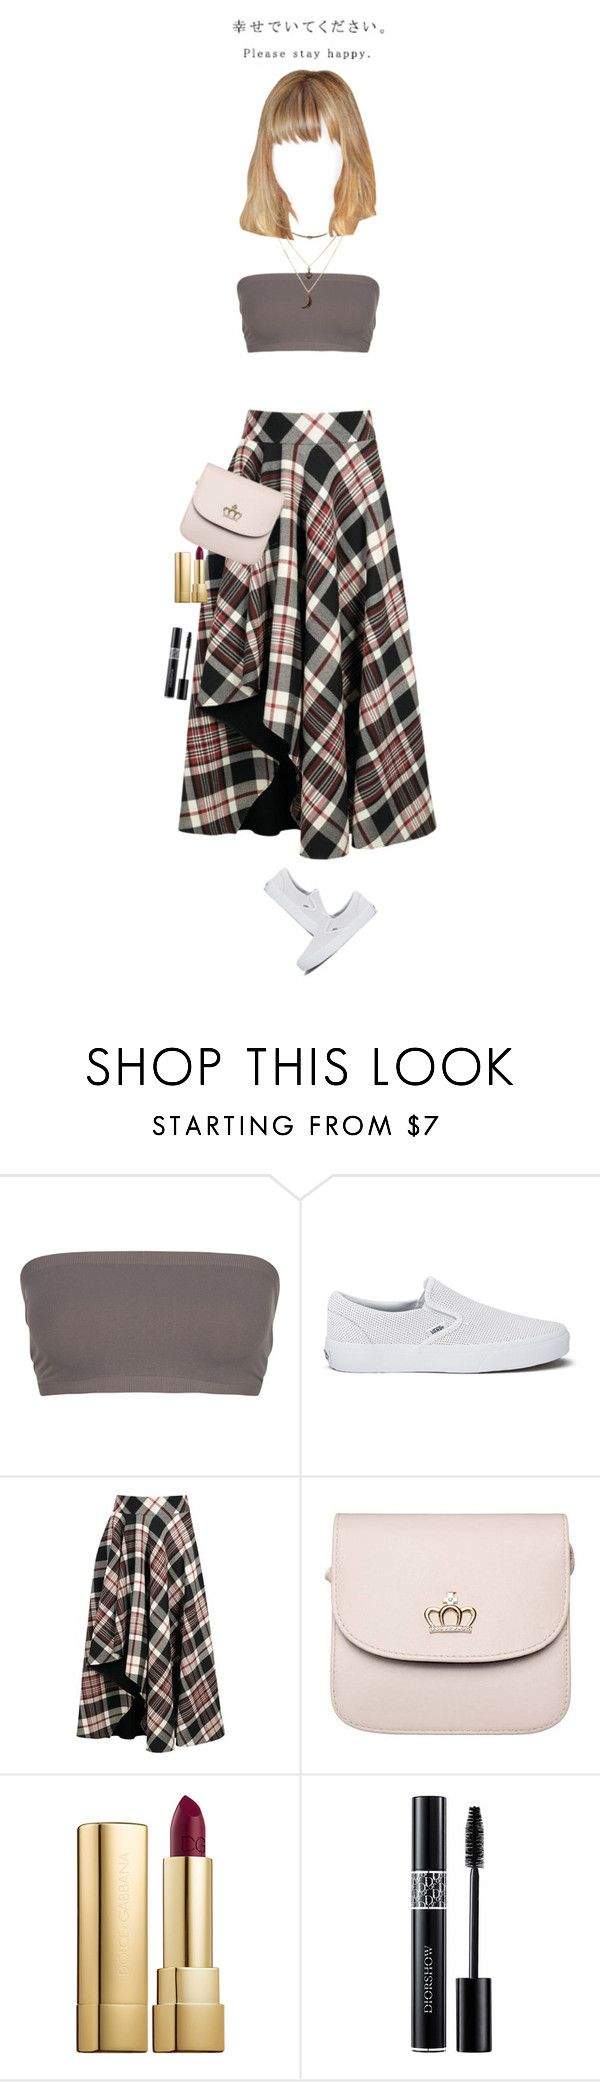 """Hipster-ish Day"" by luxury-kamar ❤ liked on Polyvore featuring Full Tilt, Vans, Alexander McQueen, Dolce&Gabbana, Christian Dior and Charlotte Russe"